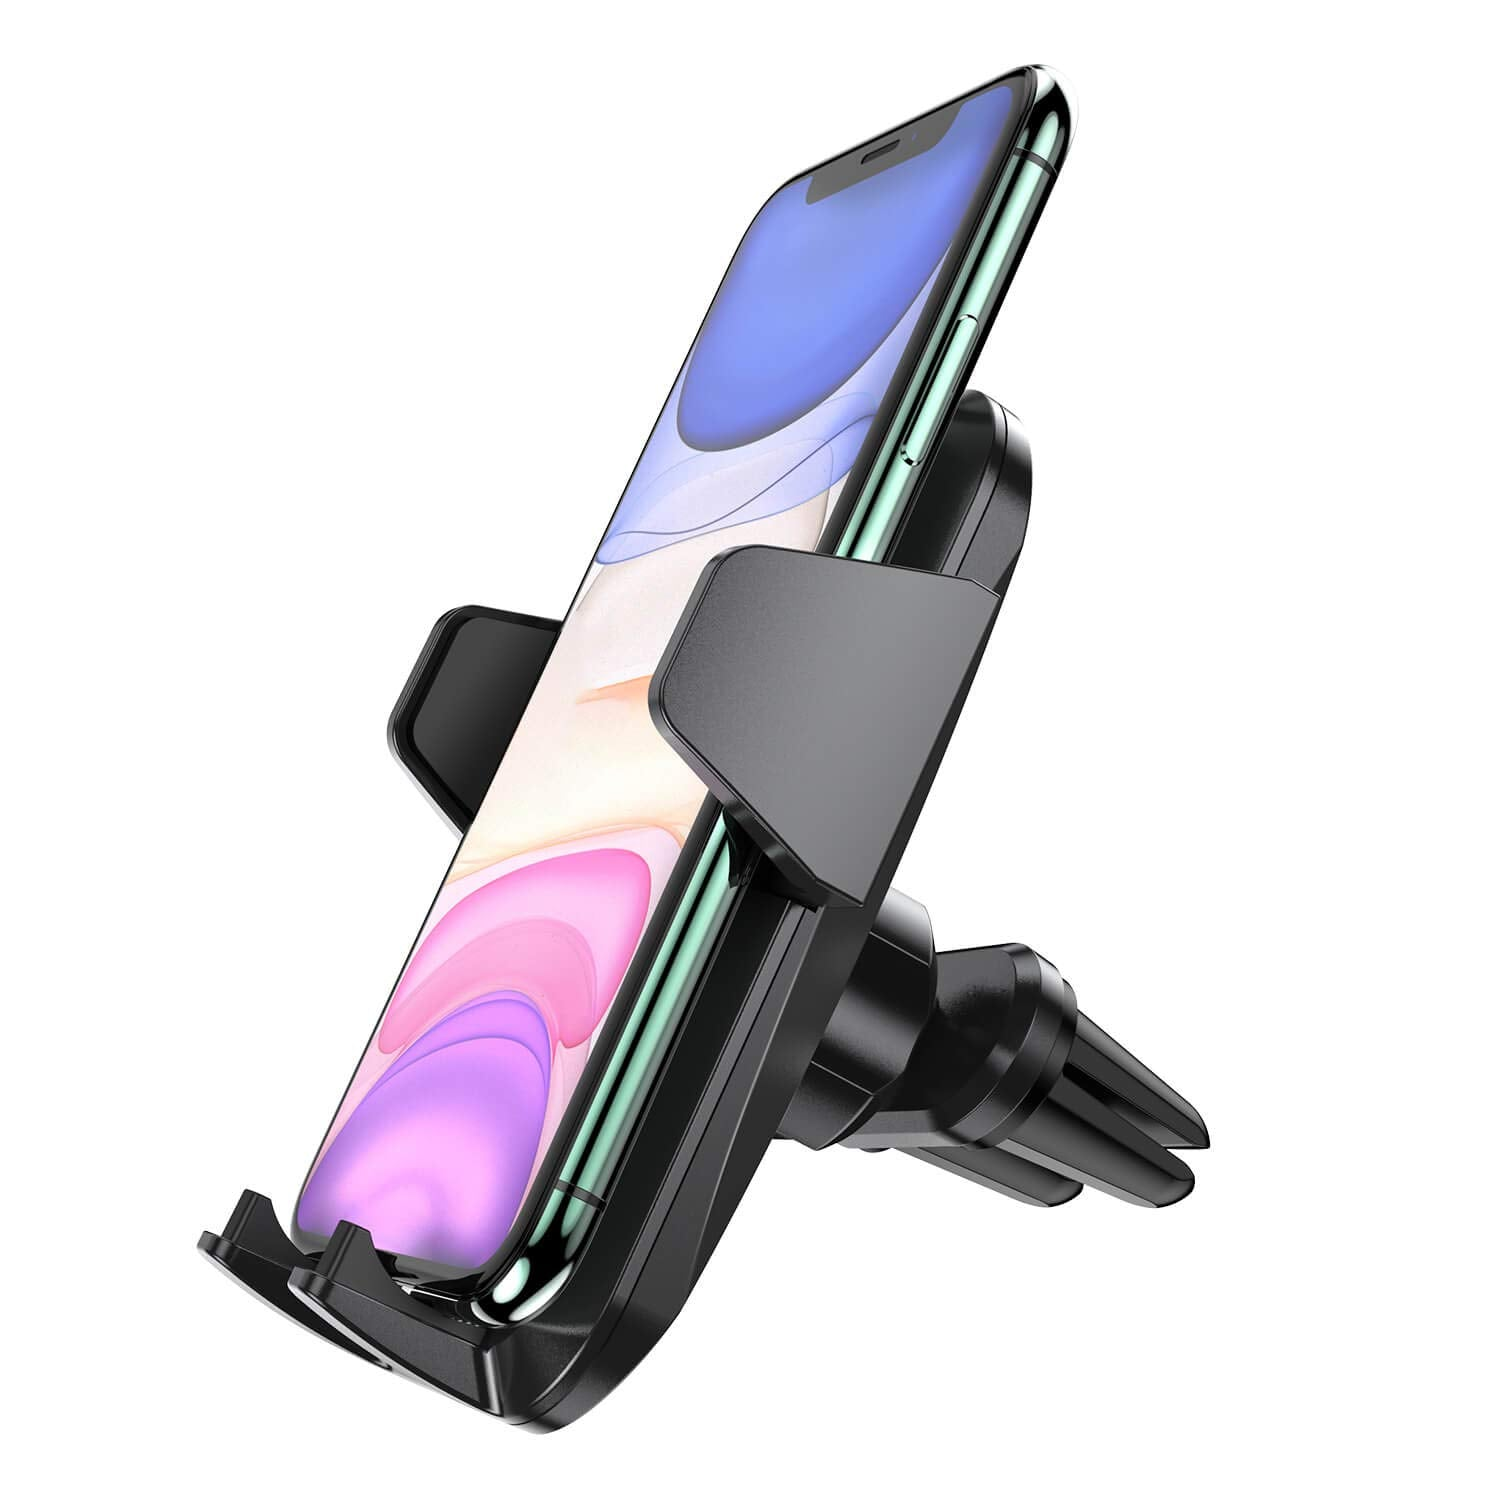 Newppon Car Phone Mount Holder : Air Vent Holders for iPhone 11 Pro Xs Max Xr X 8 7 6 Plus